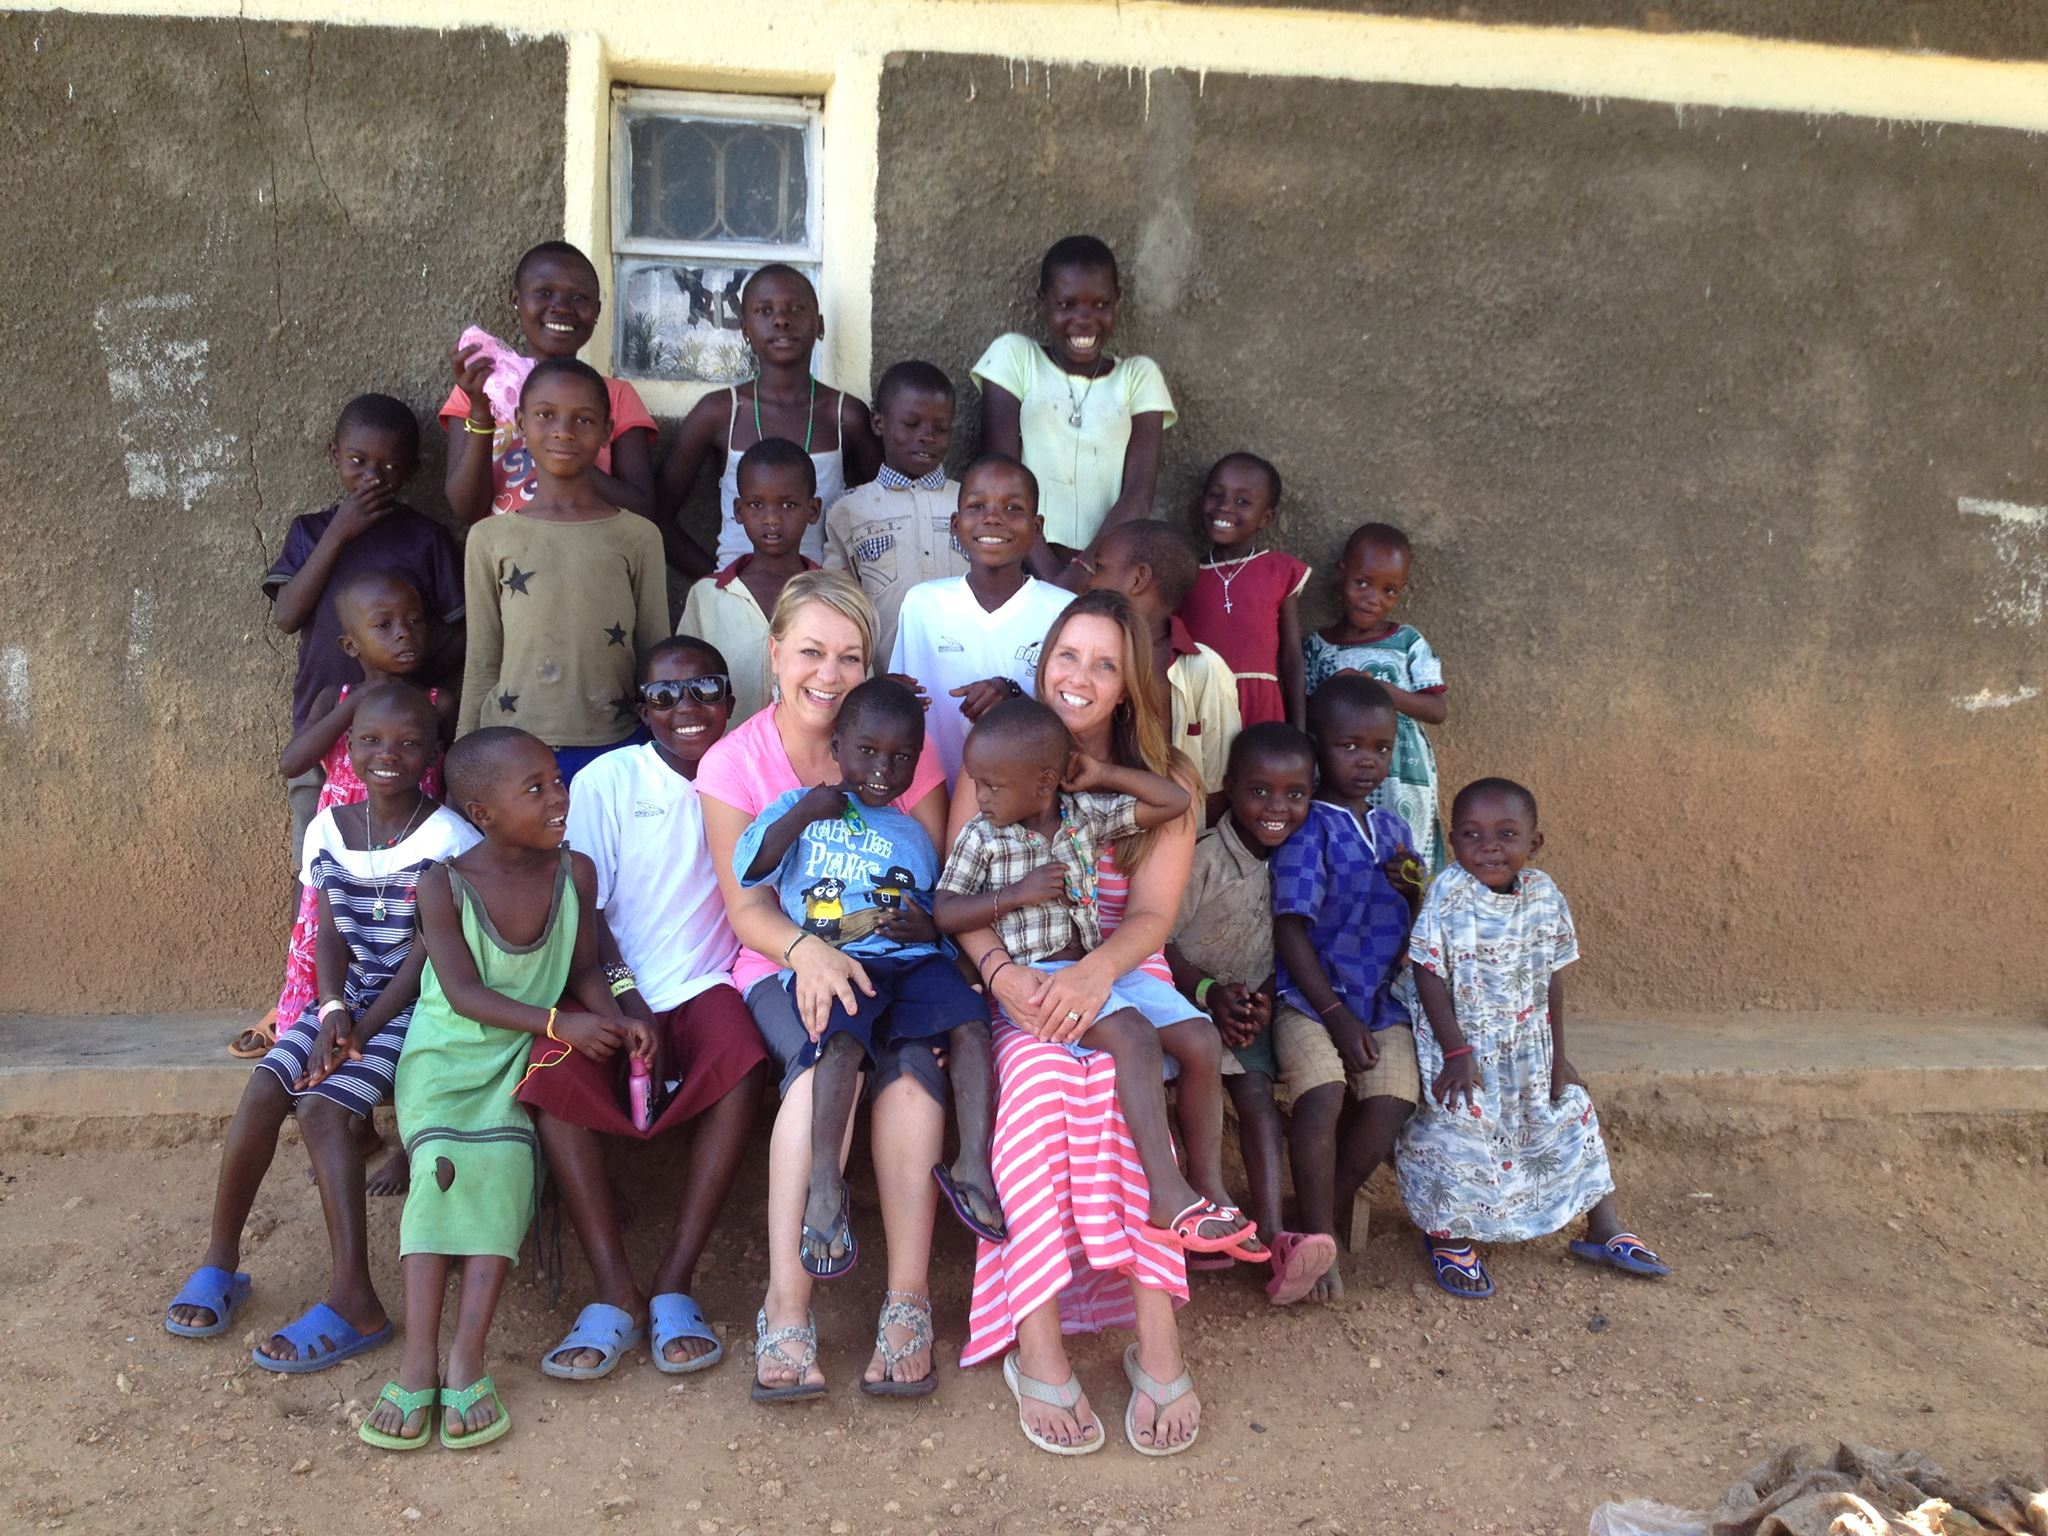 Anderson and Kovach during a recent trip to Uganda